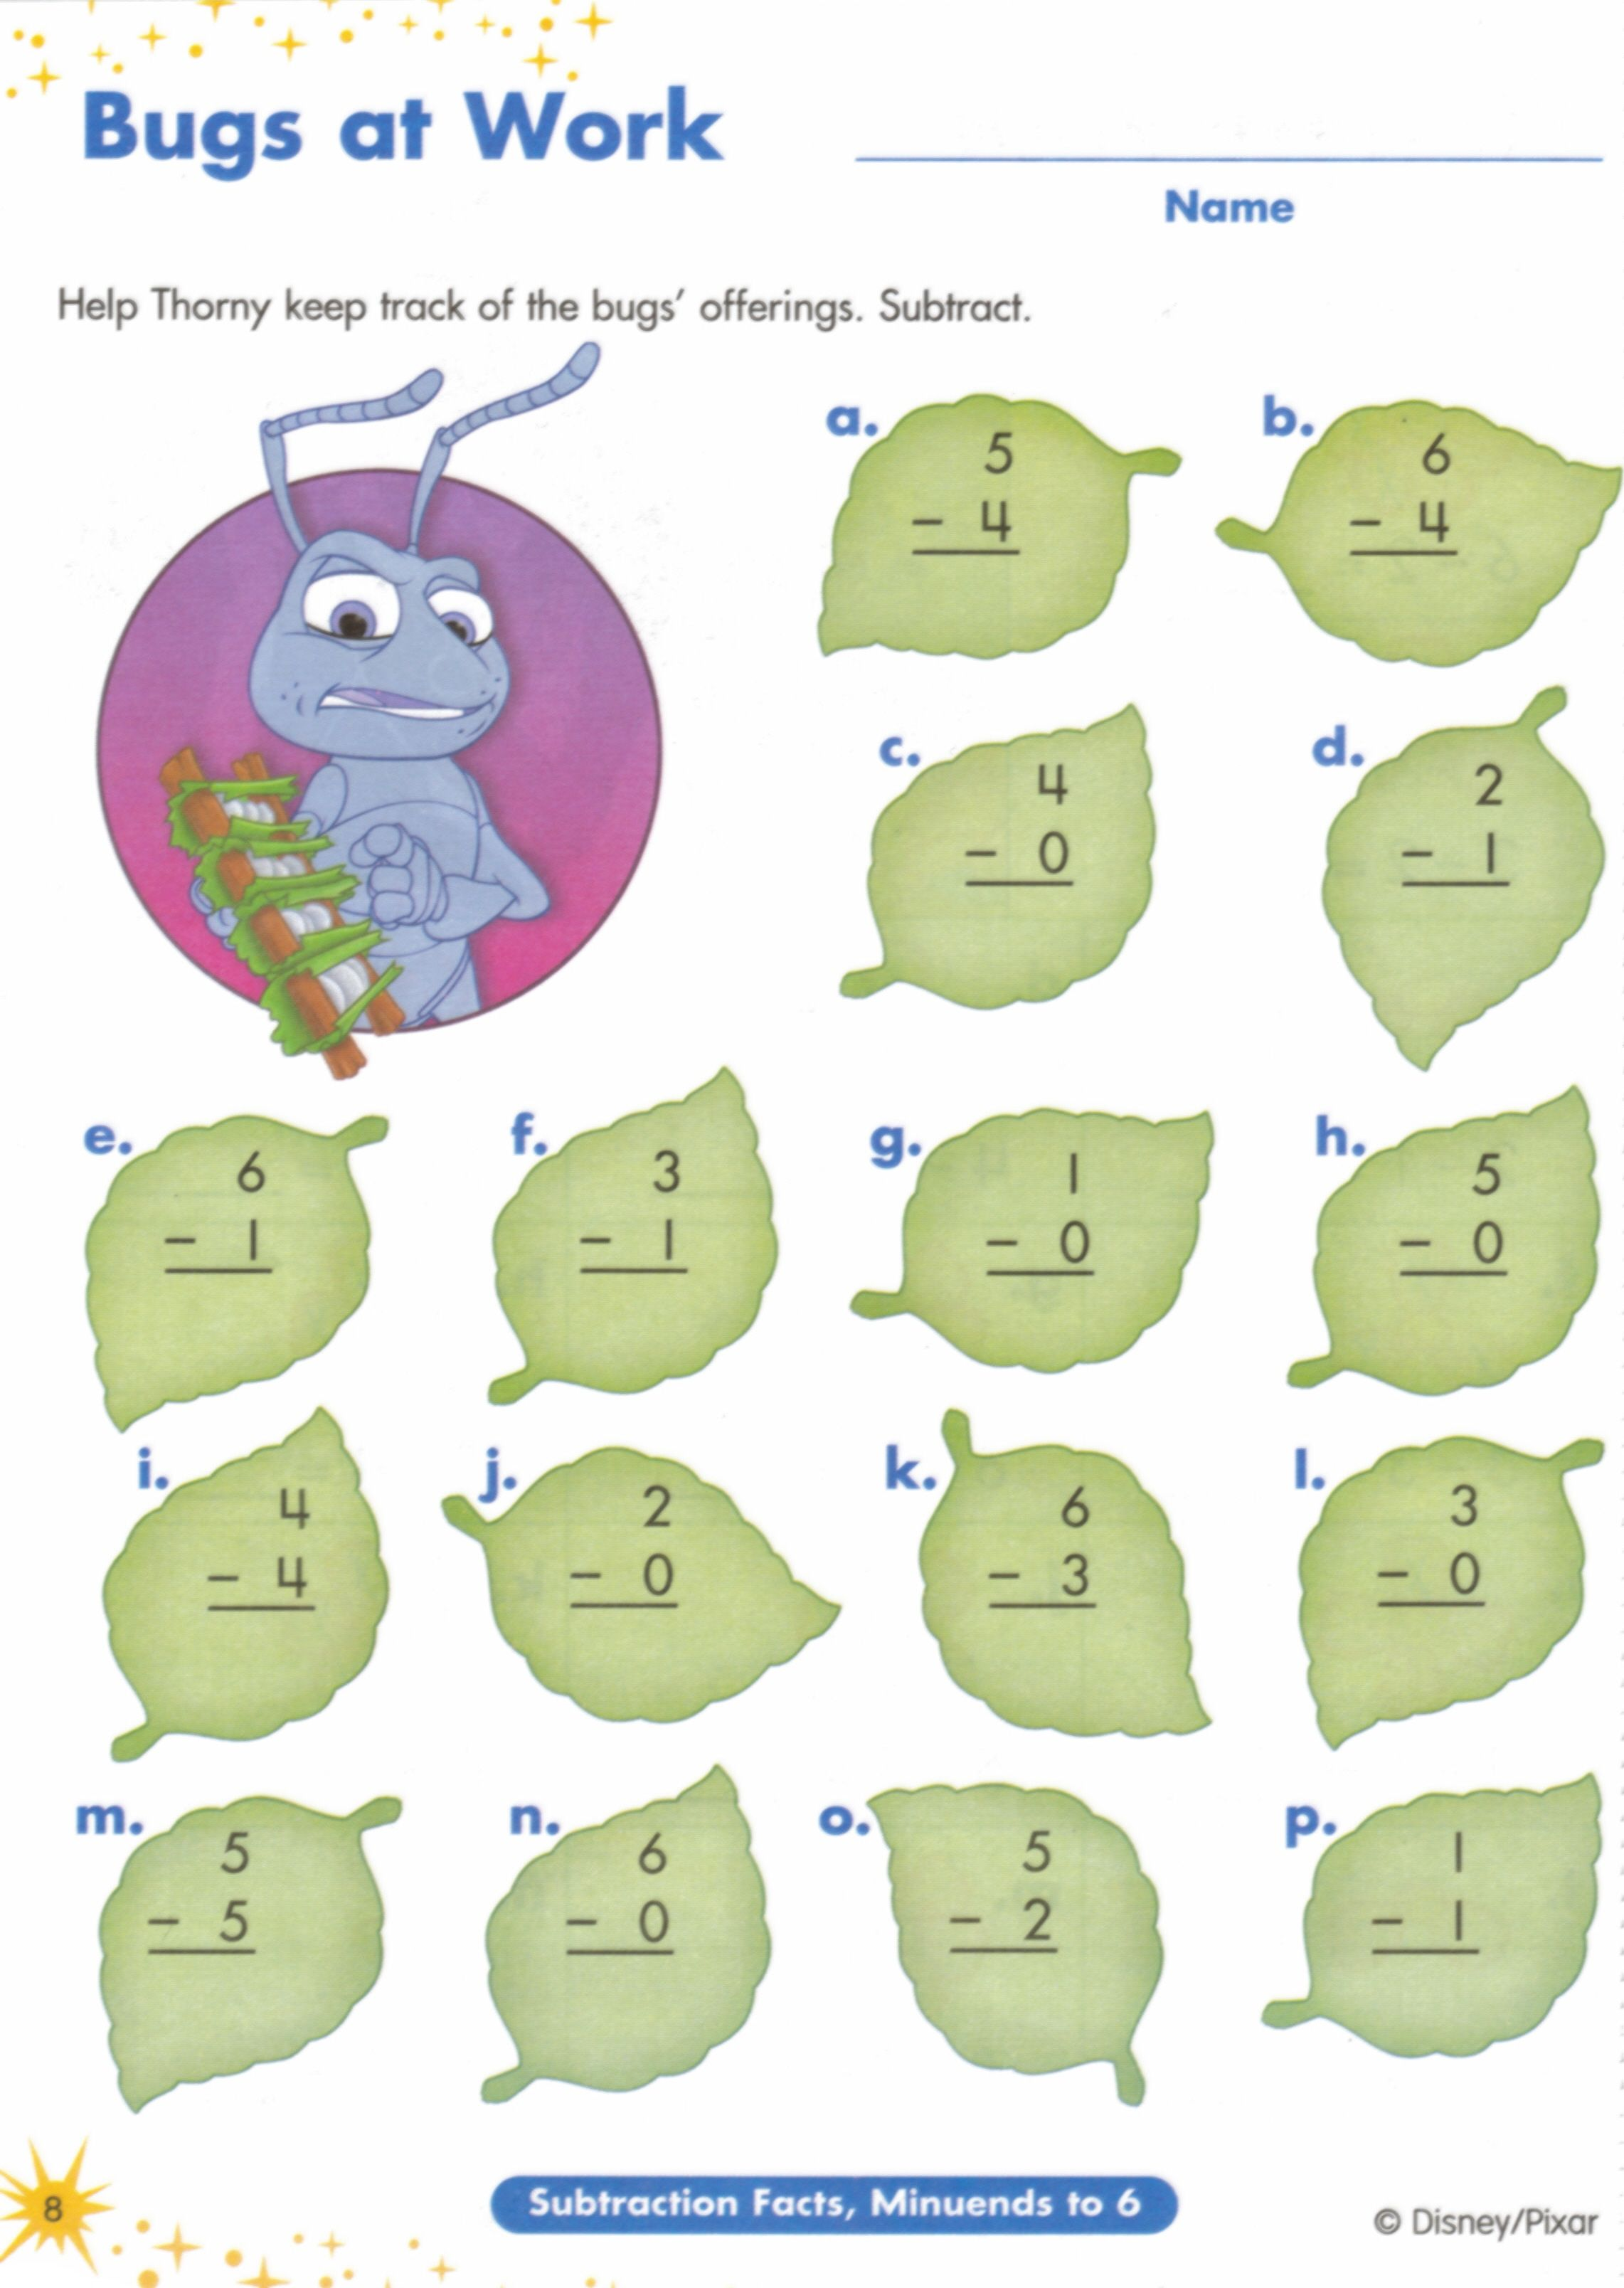 Proatmealus  Surprising  Images About Worksheets On Pinterest  Fun Facts For Kids  With Gorgeous  Images About Worksheets On Pinterest  Fun Facts For Kids Earth Day Worksheets And Jungles With Amusing Pov Worksheets Also Pre K Phonics Worksheets In Addition Physical Change Worksheet And Inequality Practice Worksheets As Well As Integer Operation Worksheets Additionally Ocean Worksheet From Pinterestcom With Proatmealus  Gorgeous  Images About Worksheets On Pinterest  Fun Facts For Kids  With Amusing  Images About Worksheets On Pinterest  Fun Facts For Kids Earth Day Worksheets And Jungles And Surprising Pov Worksheets Also Pre K Phonics Worksheets In Addition Physical Change Worksheet From Pinterestcom